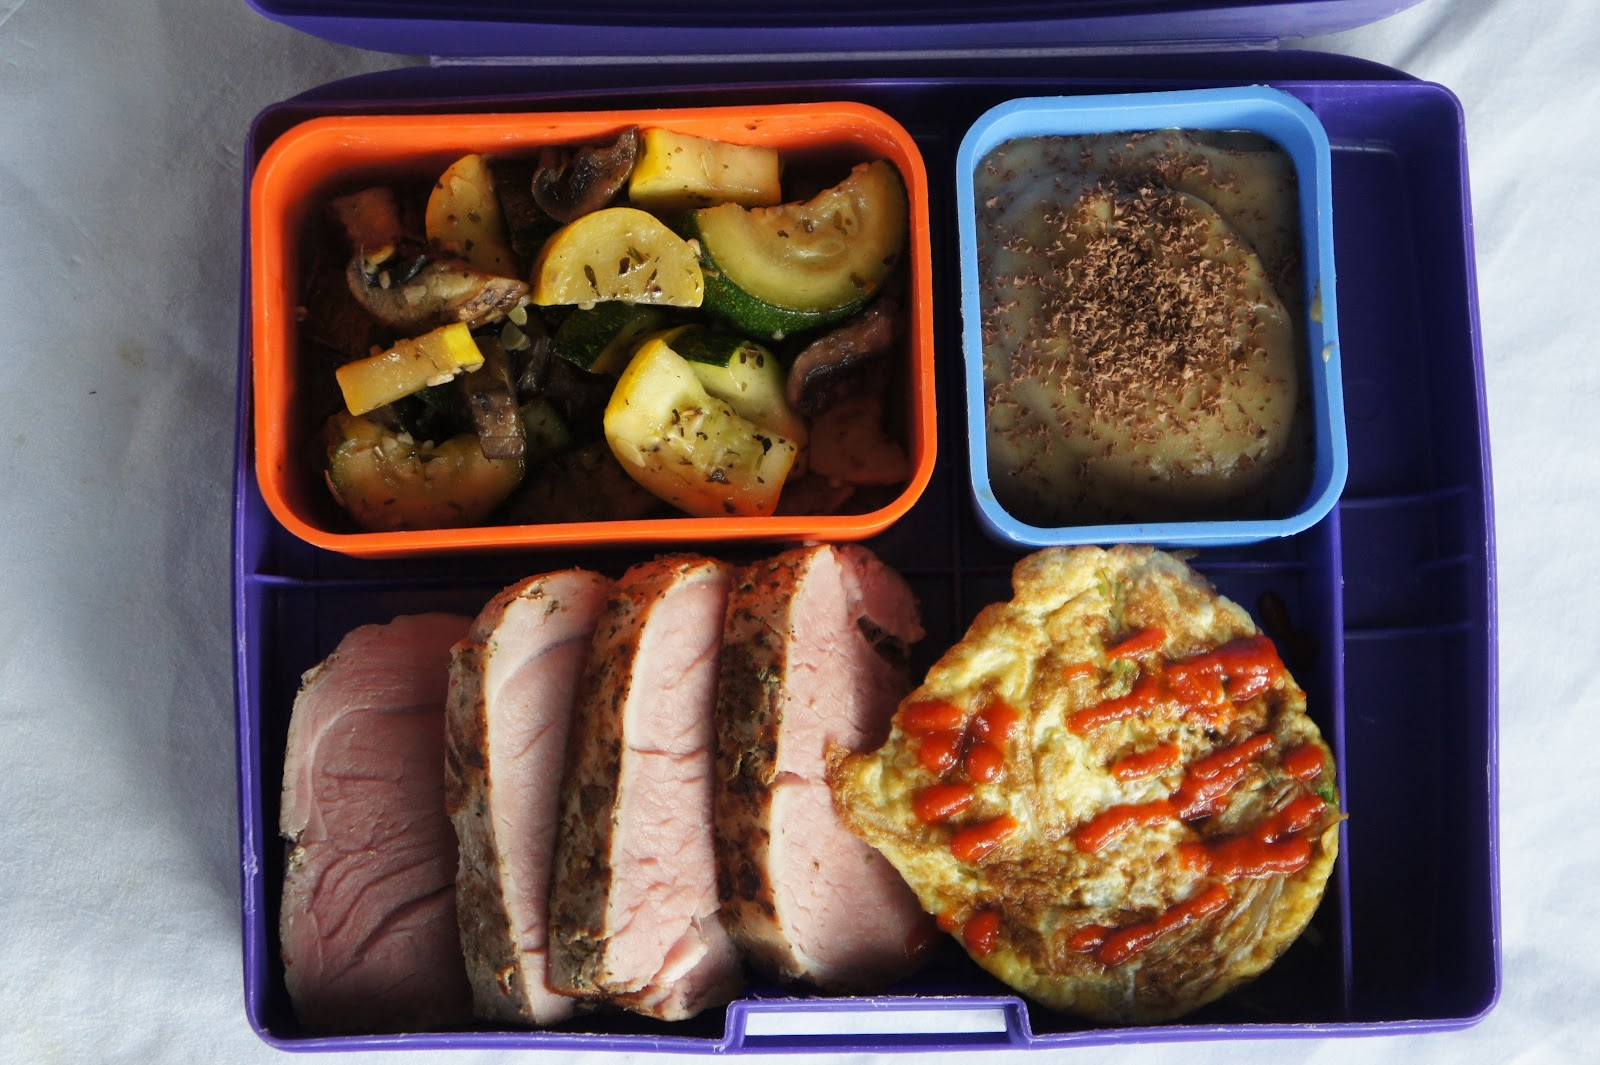 Bento Boxes & Packed Meals